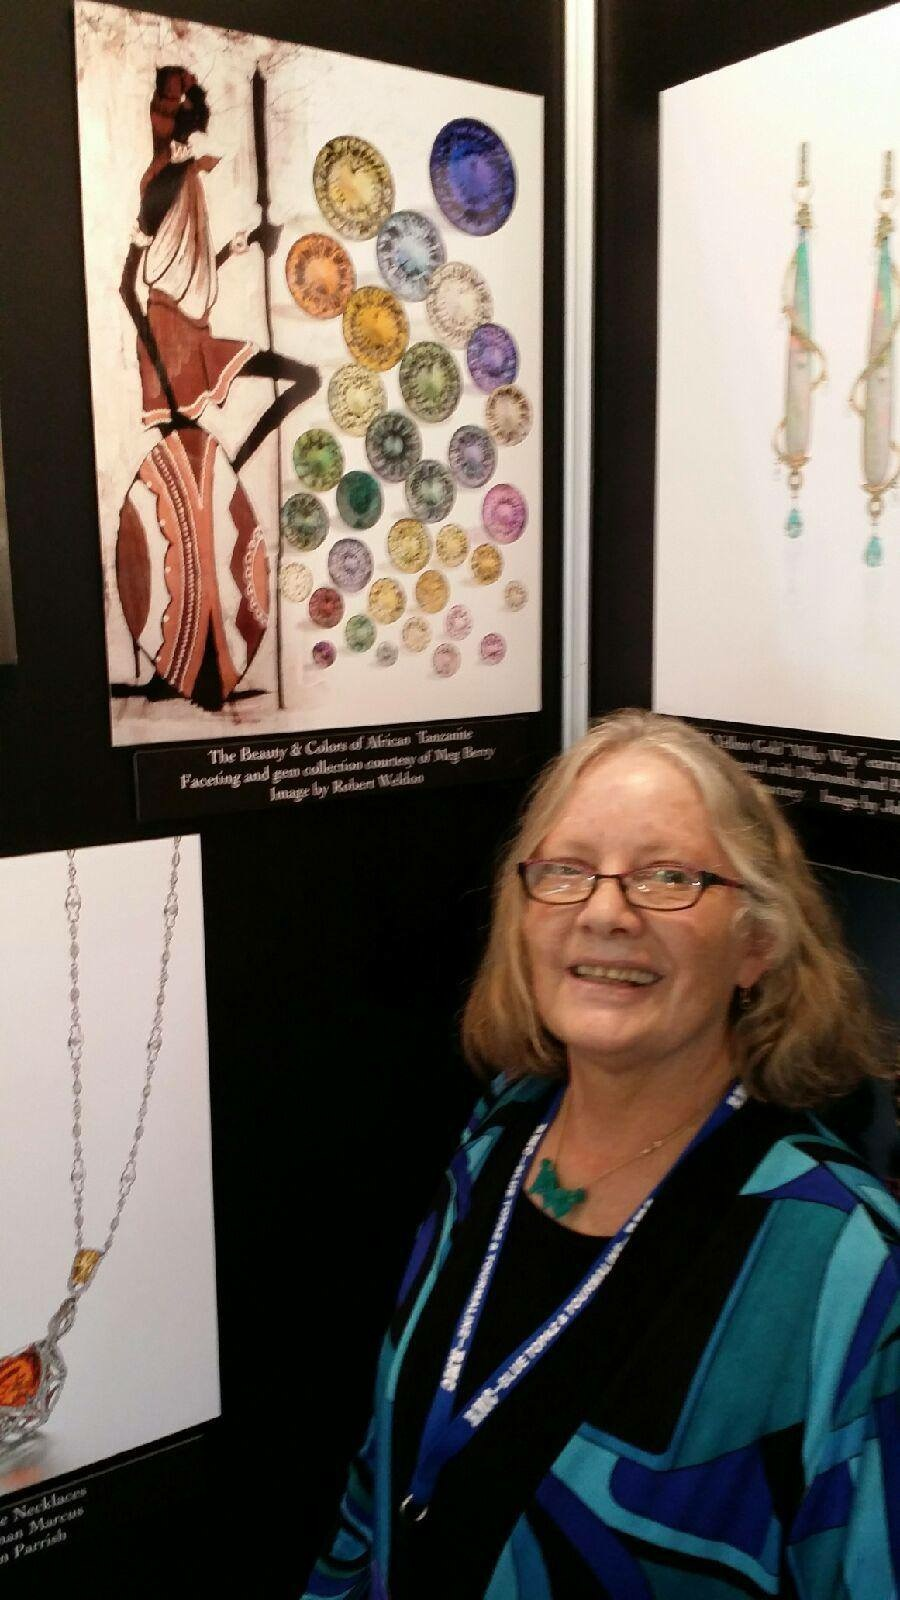 Meg Berry with poster of her cut tanzanites. Photo by Robert Weldon